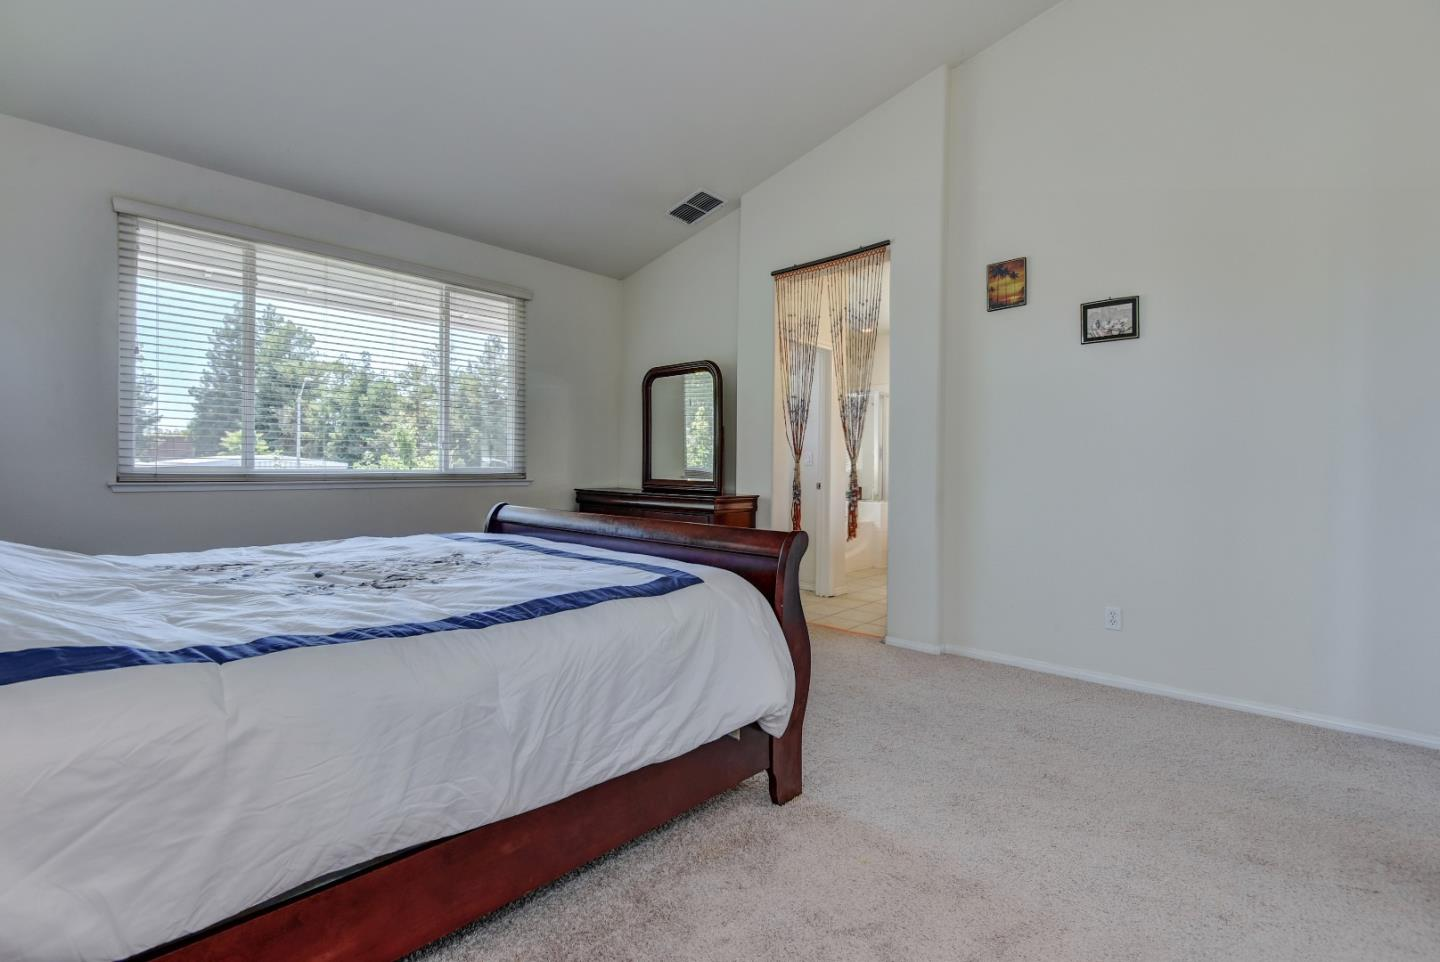 Additional photo for property listing at 2002 Gammell Brown Place 2002 Gammell Brown Place Santa Clara, 加利福尼亞州 95050 美國